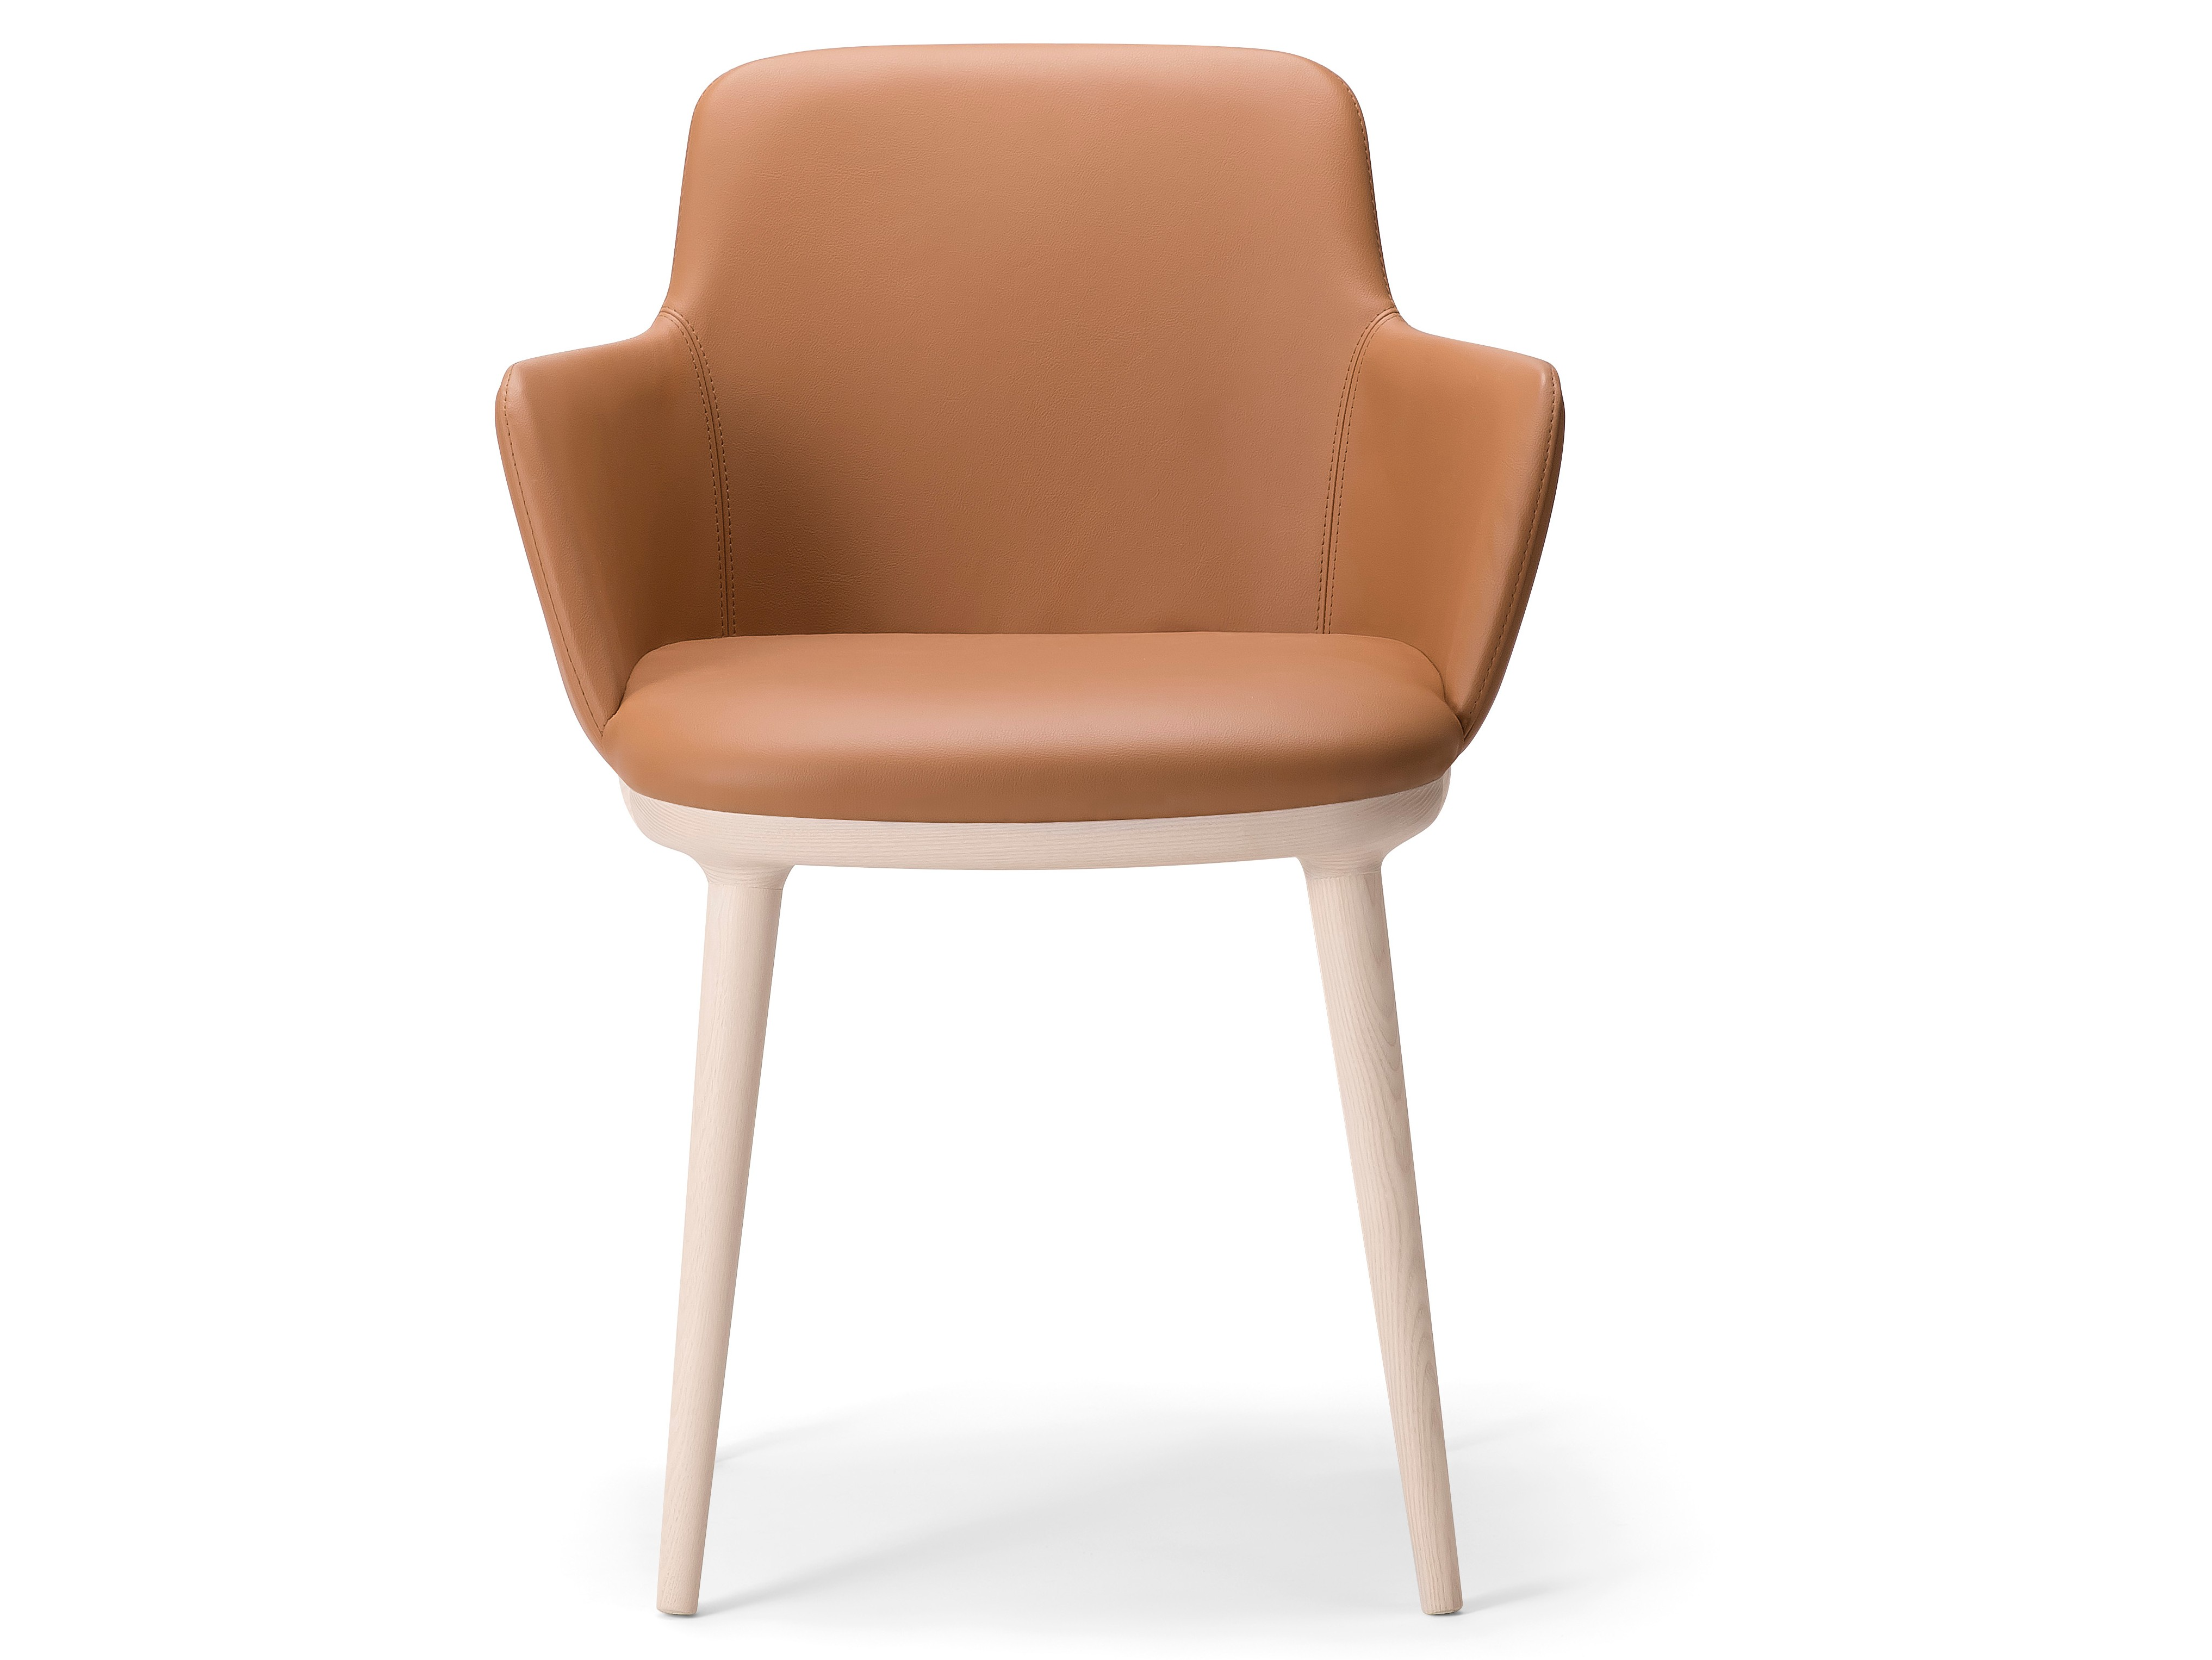 Upholstered chair with Armrests by Enrico Franzolini